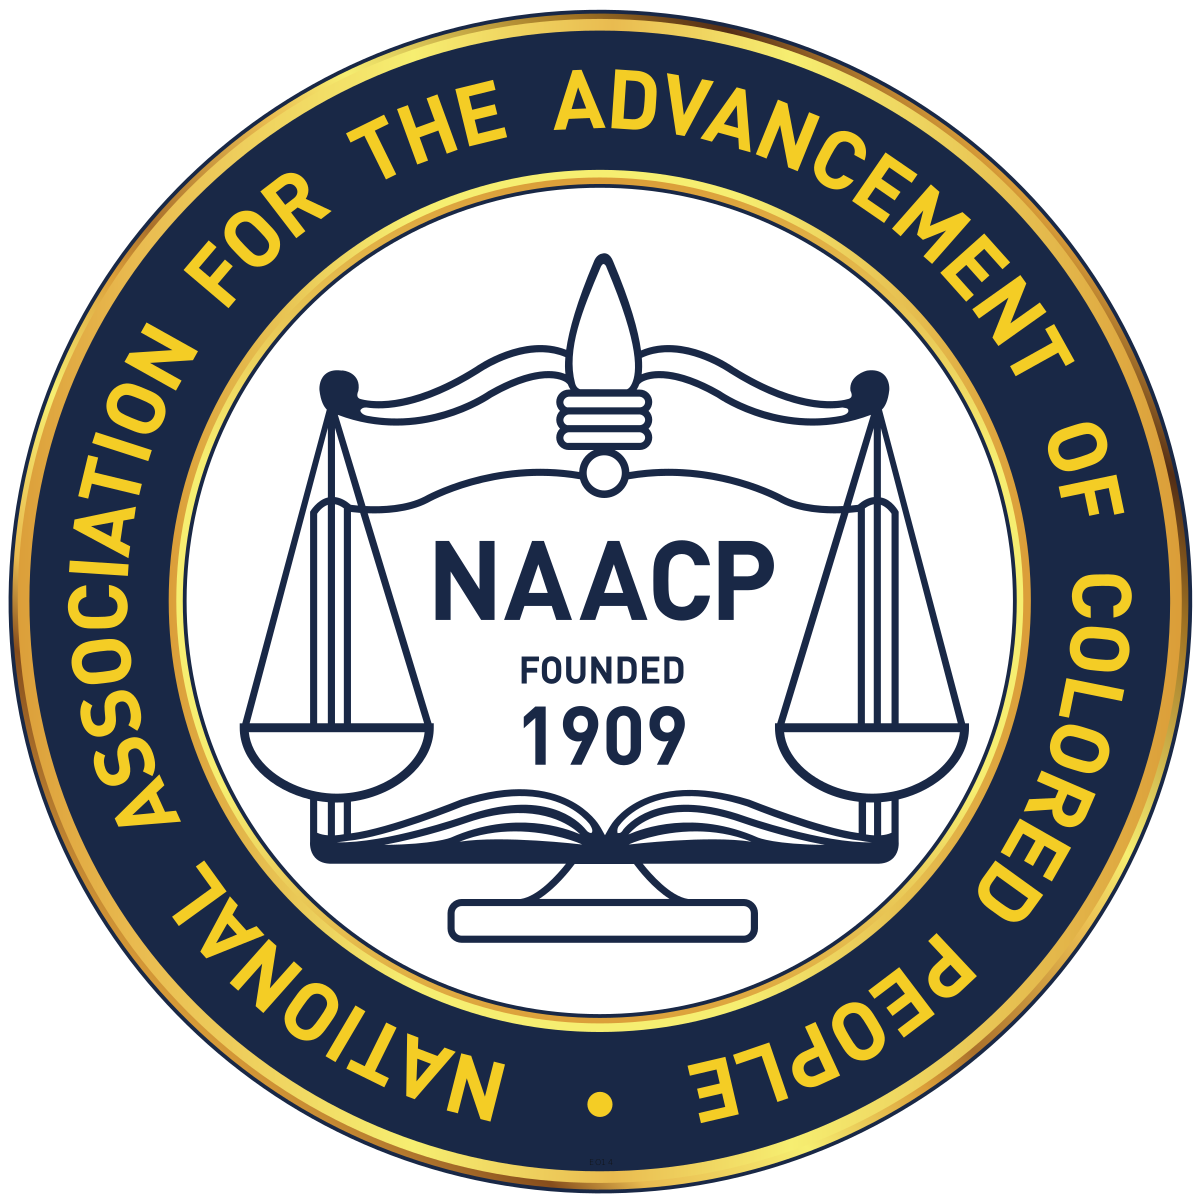 Minneapolis NAACP